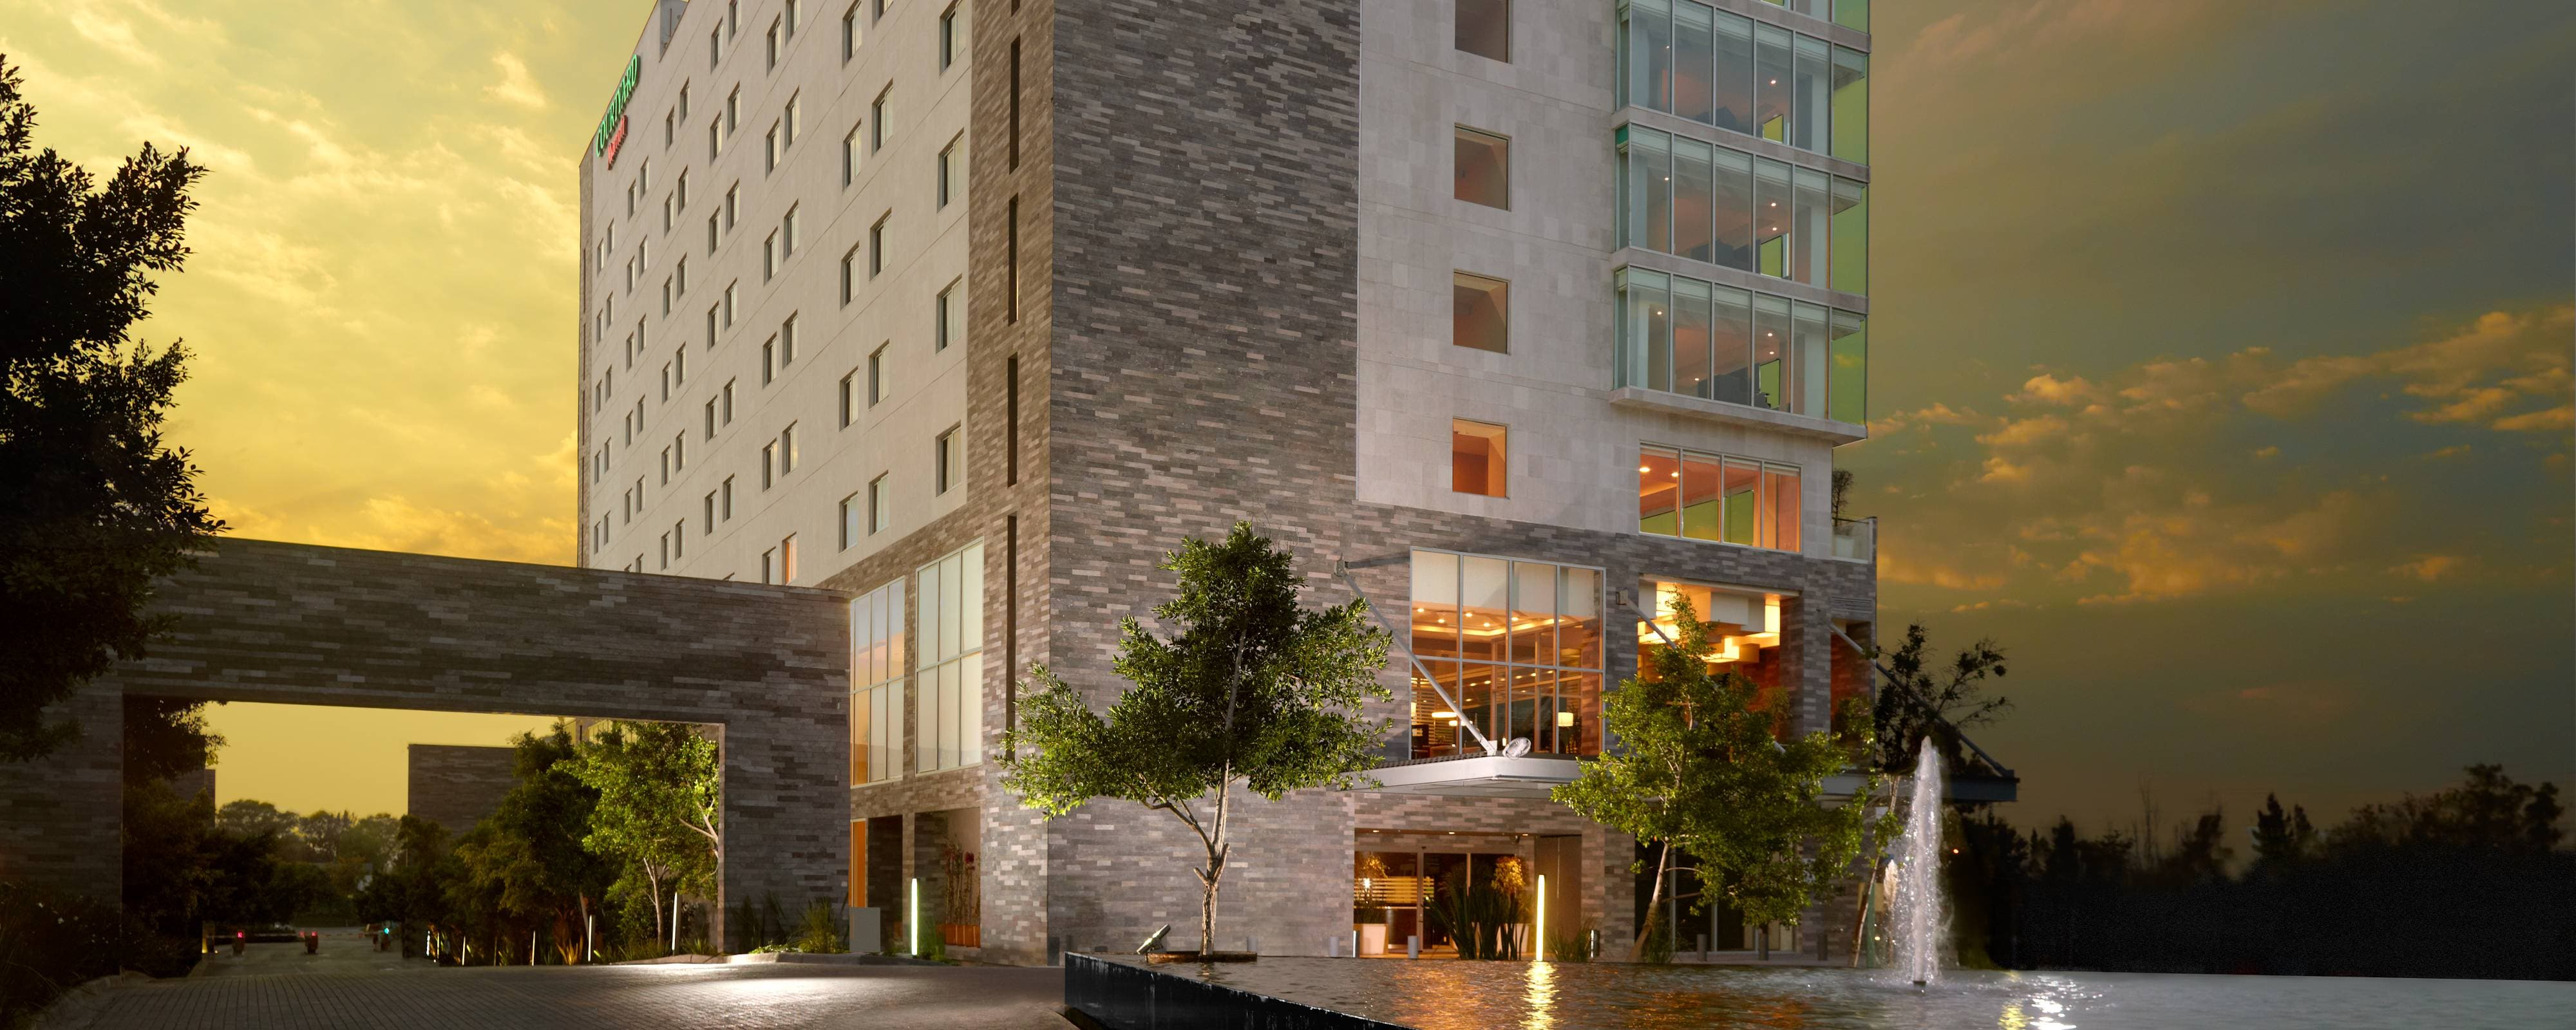 Hotel Courtyard by Marriott Querétaro